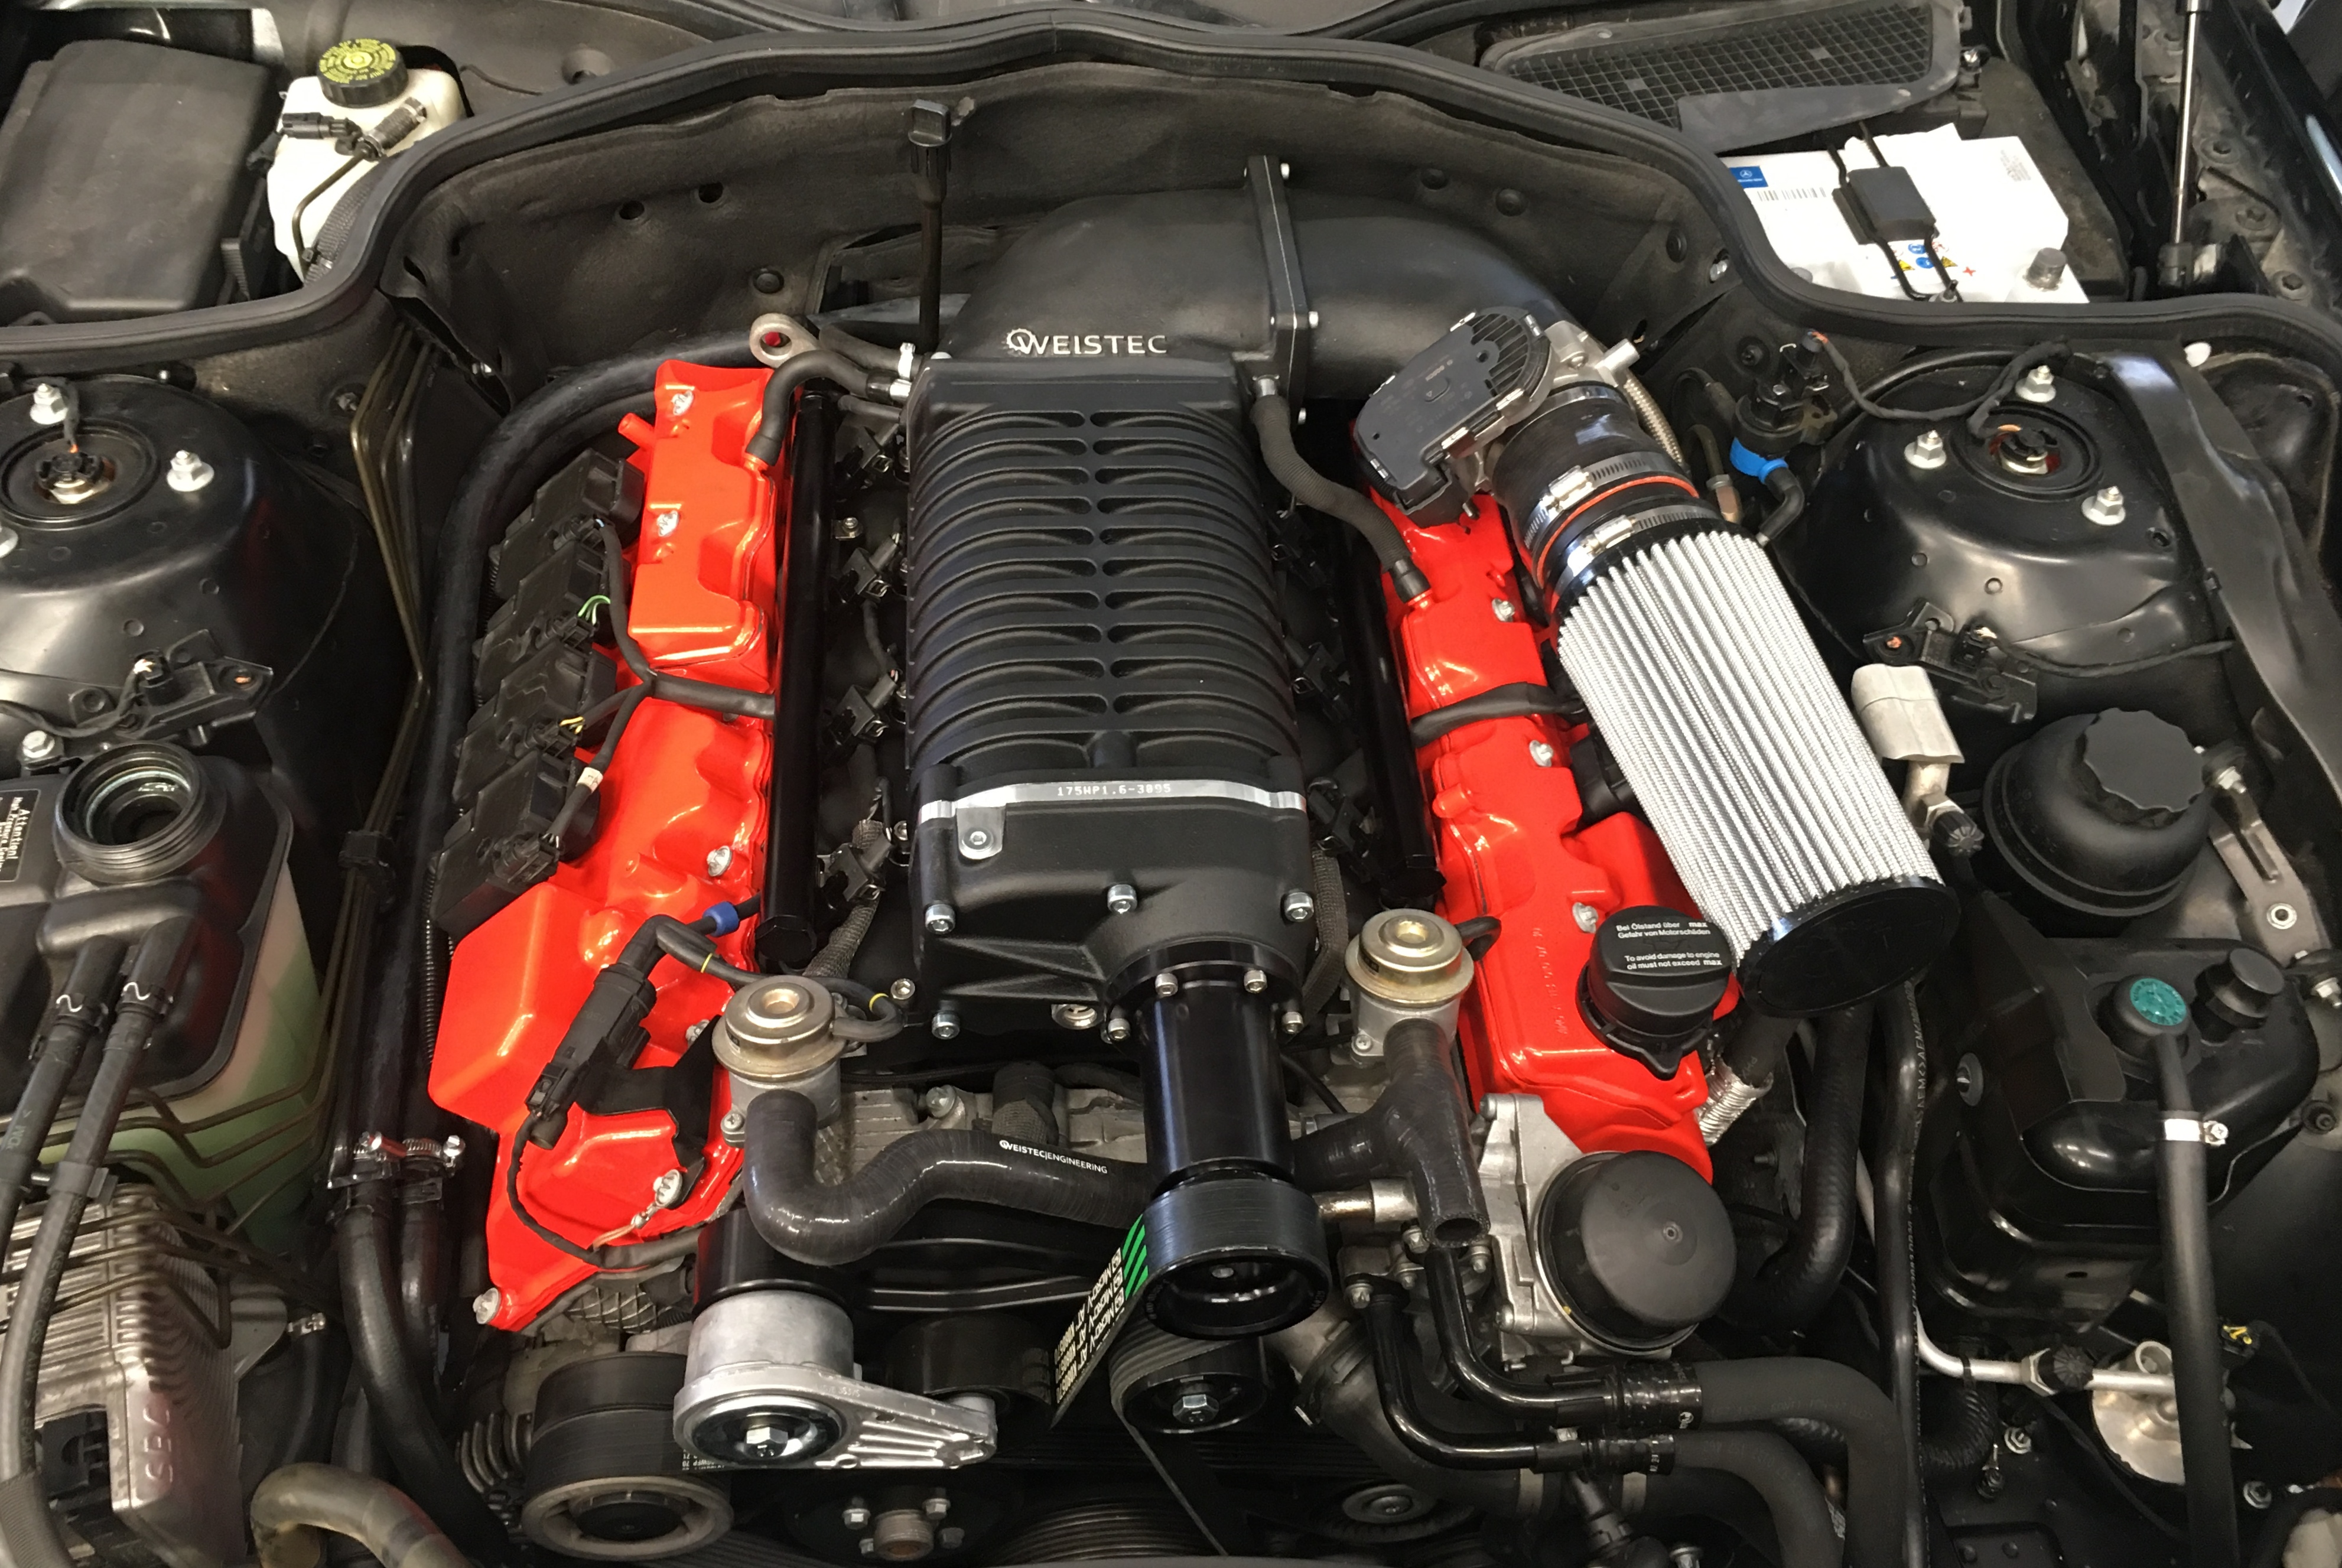 Mercedes SL 55 AMG, supercharger upgrade, stage 3, Weistec